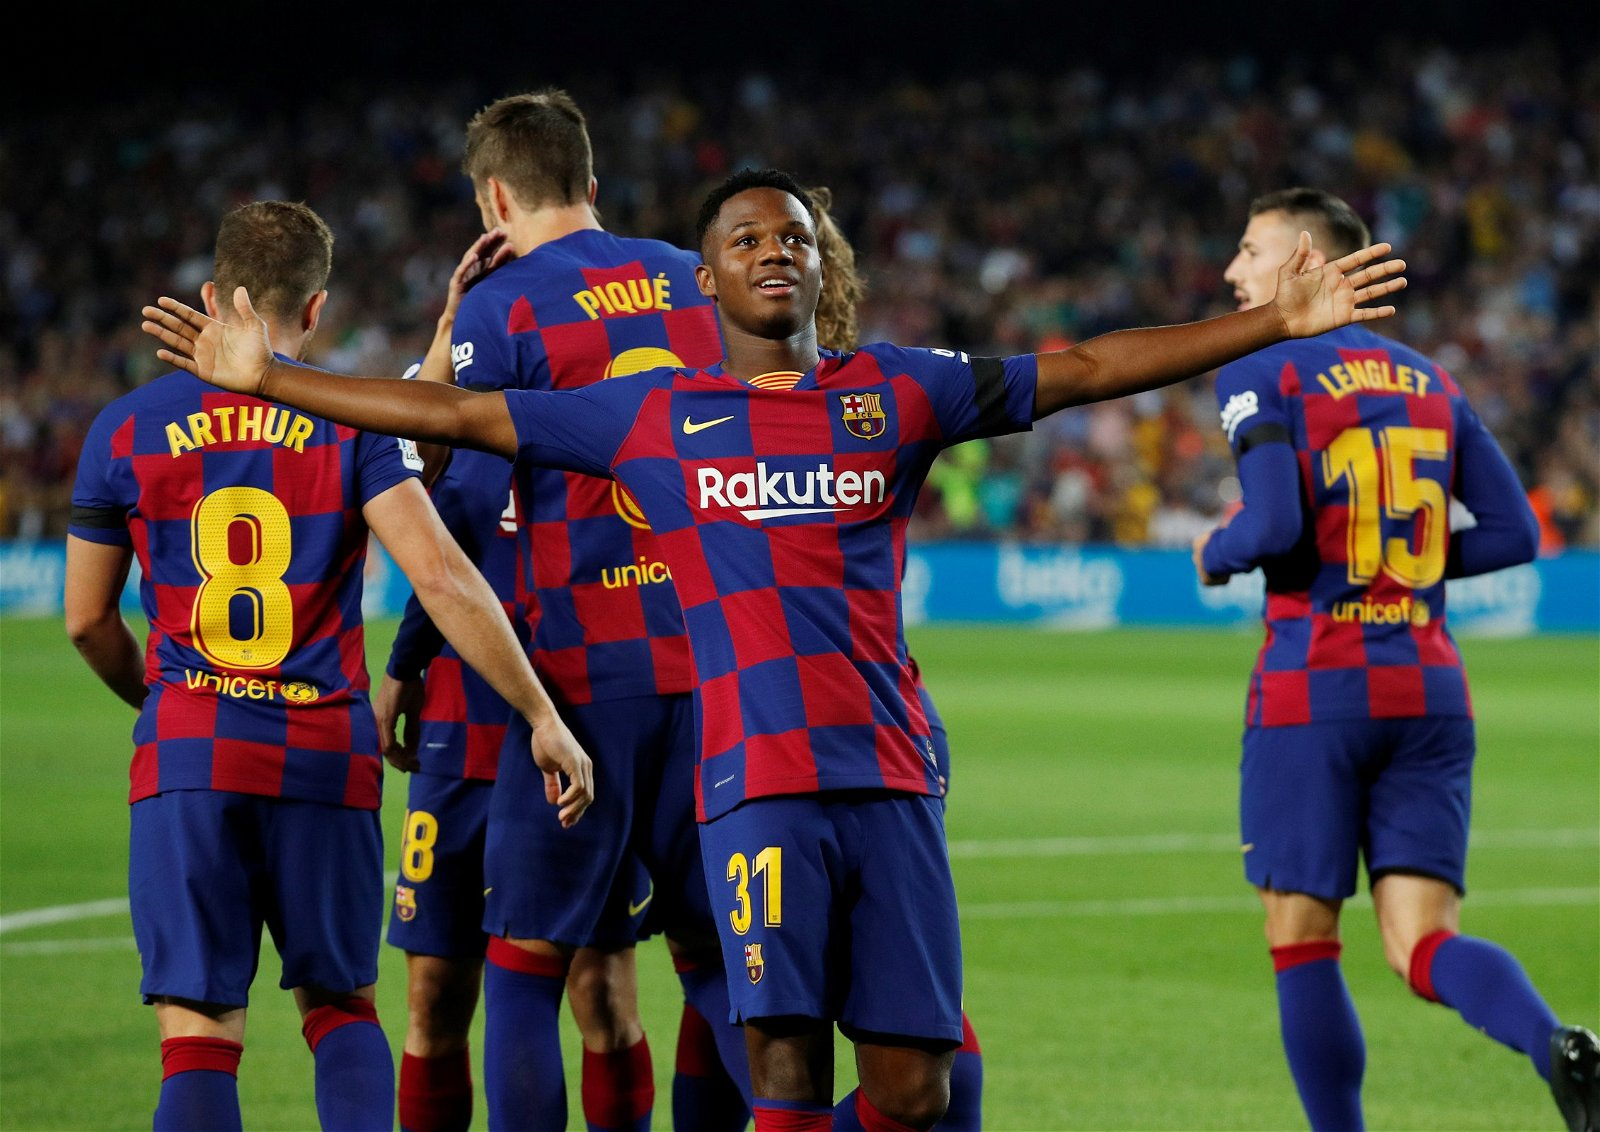 2019 09 14T191141Z 157269303 RC19F1BD6CC0 RTRMADP 3 SOCCER SPAIN FCB VAL REPORT - West Ham Roundup: Bullard excited, Redknapp has high hopes, Wonderkid was targeted